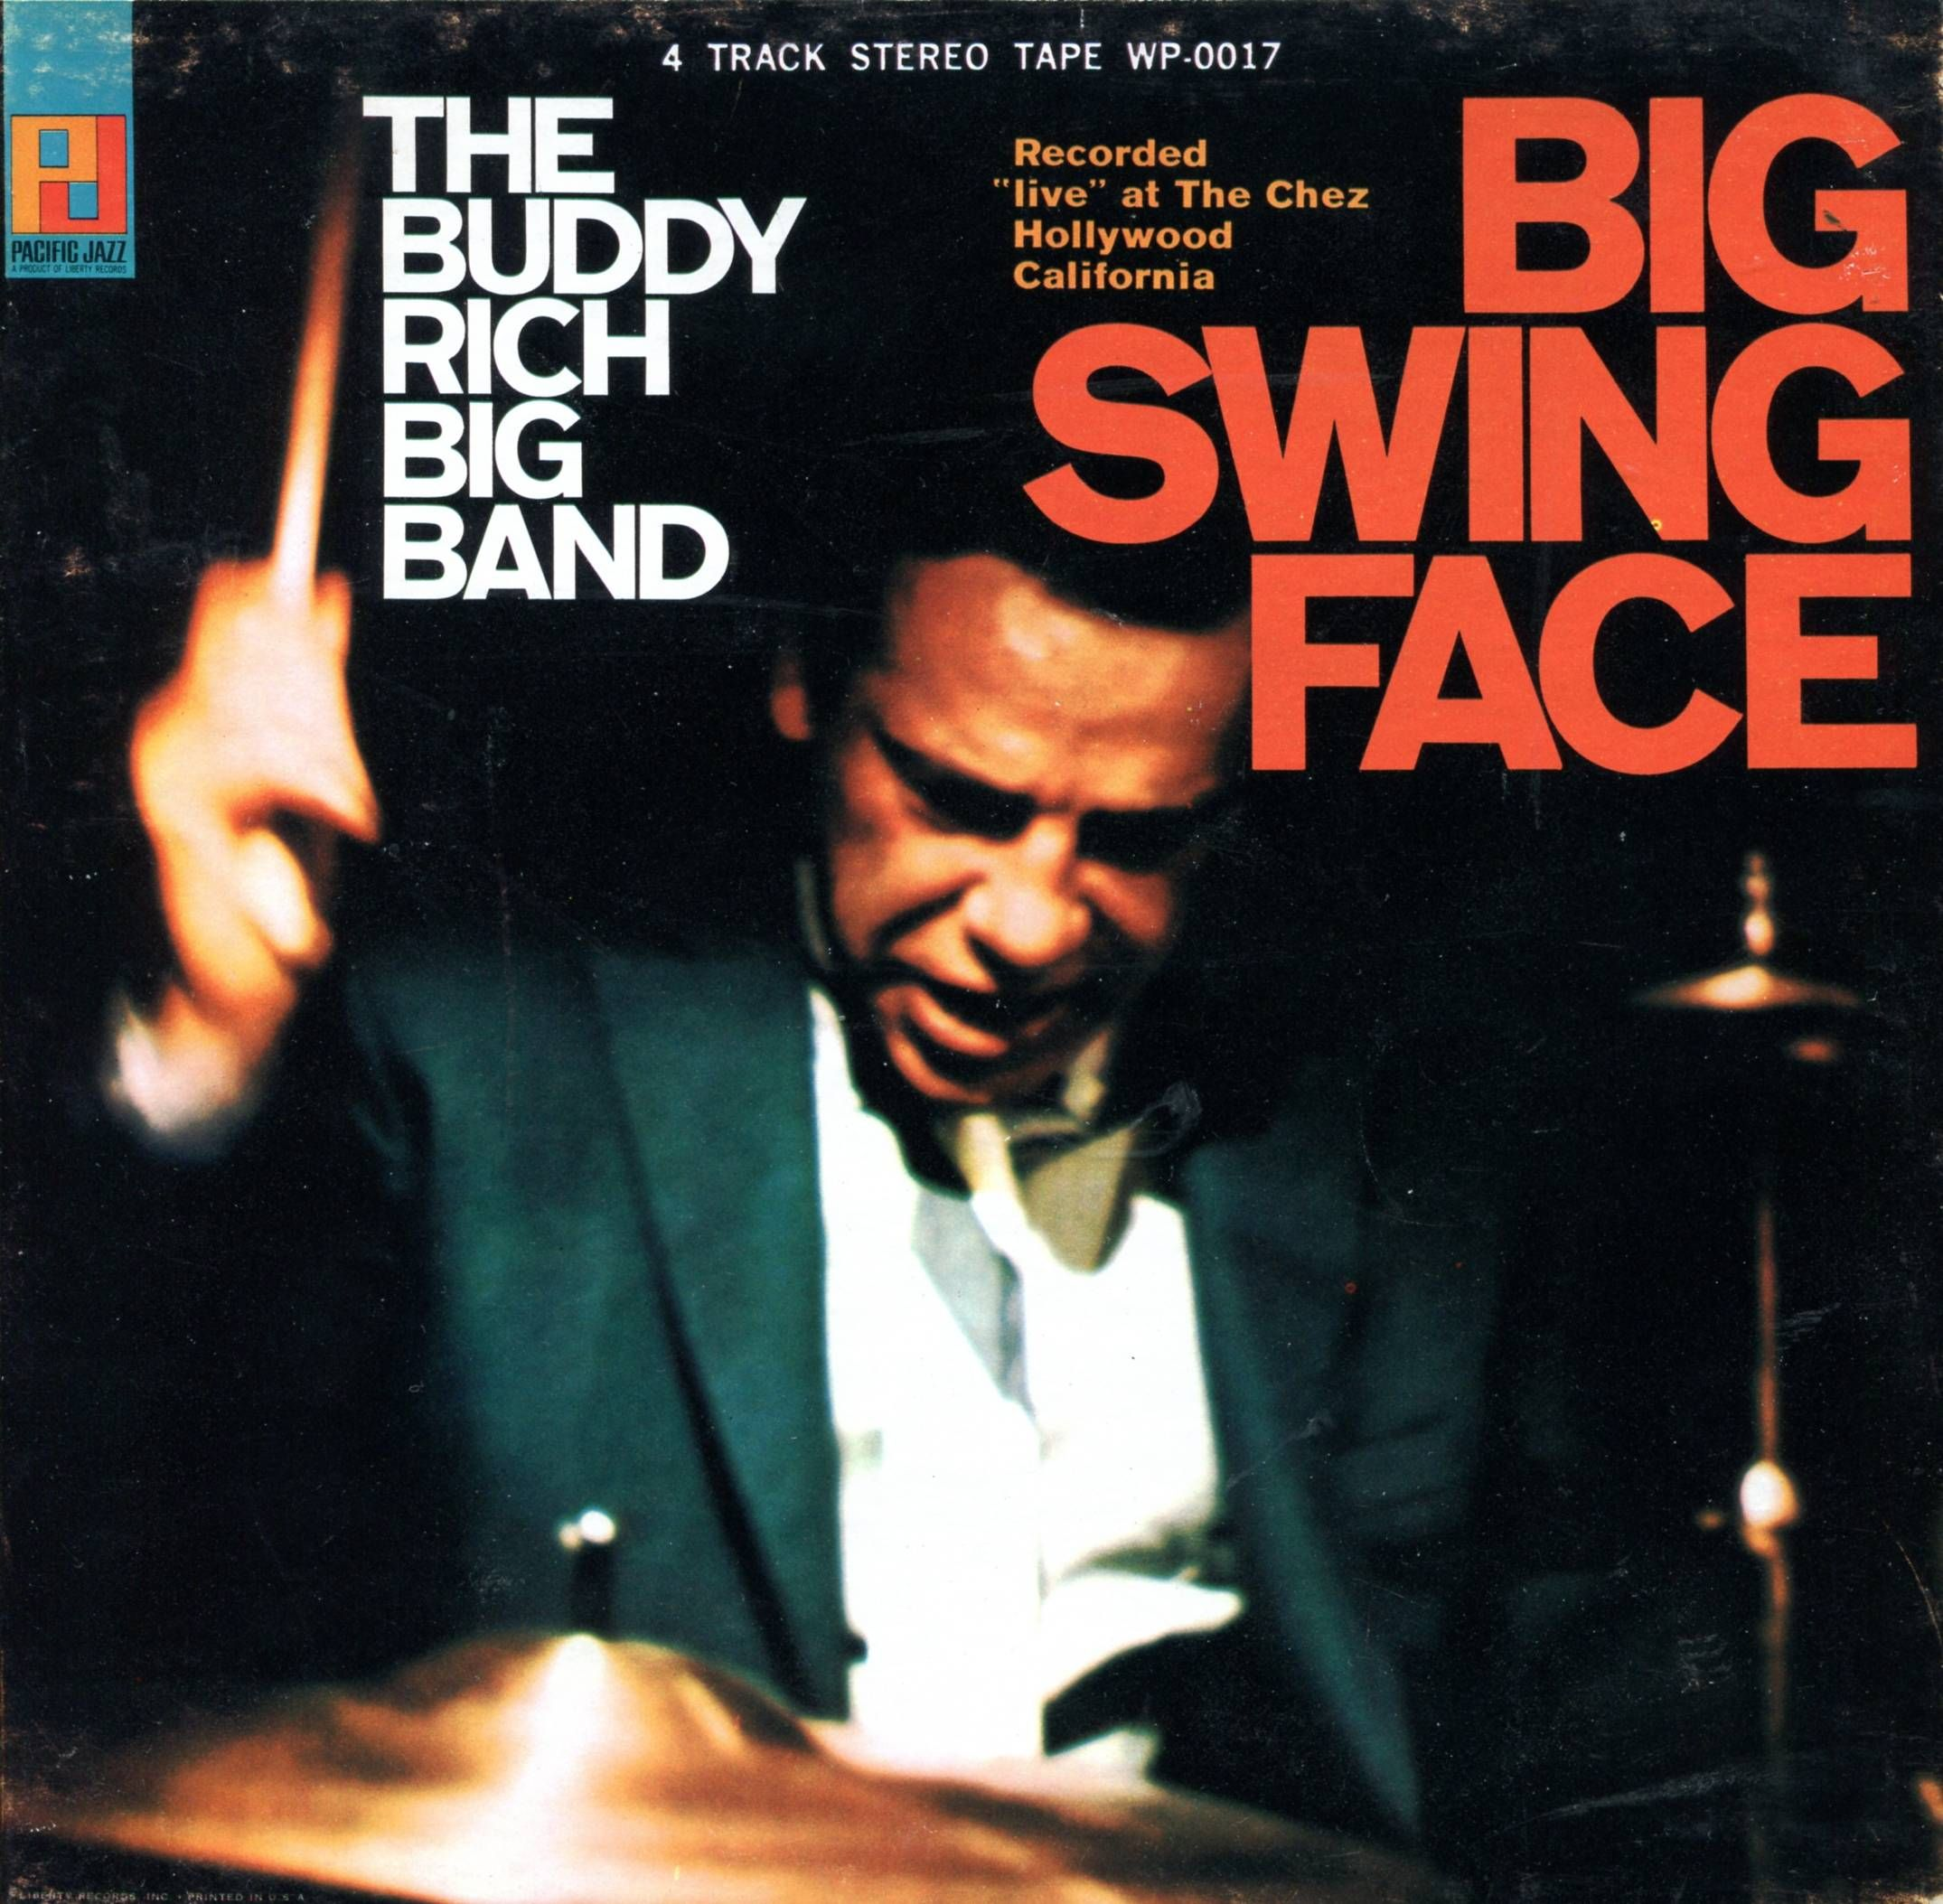 Buddy Rich Big Swing Face Pacific Jazz Stereo 7 1 2 IPS Reel to Reel